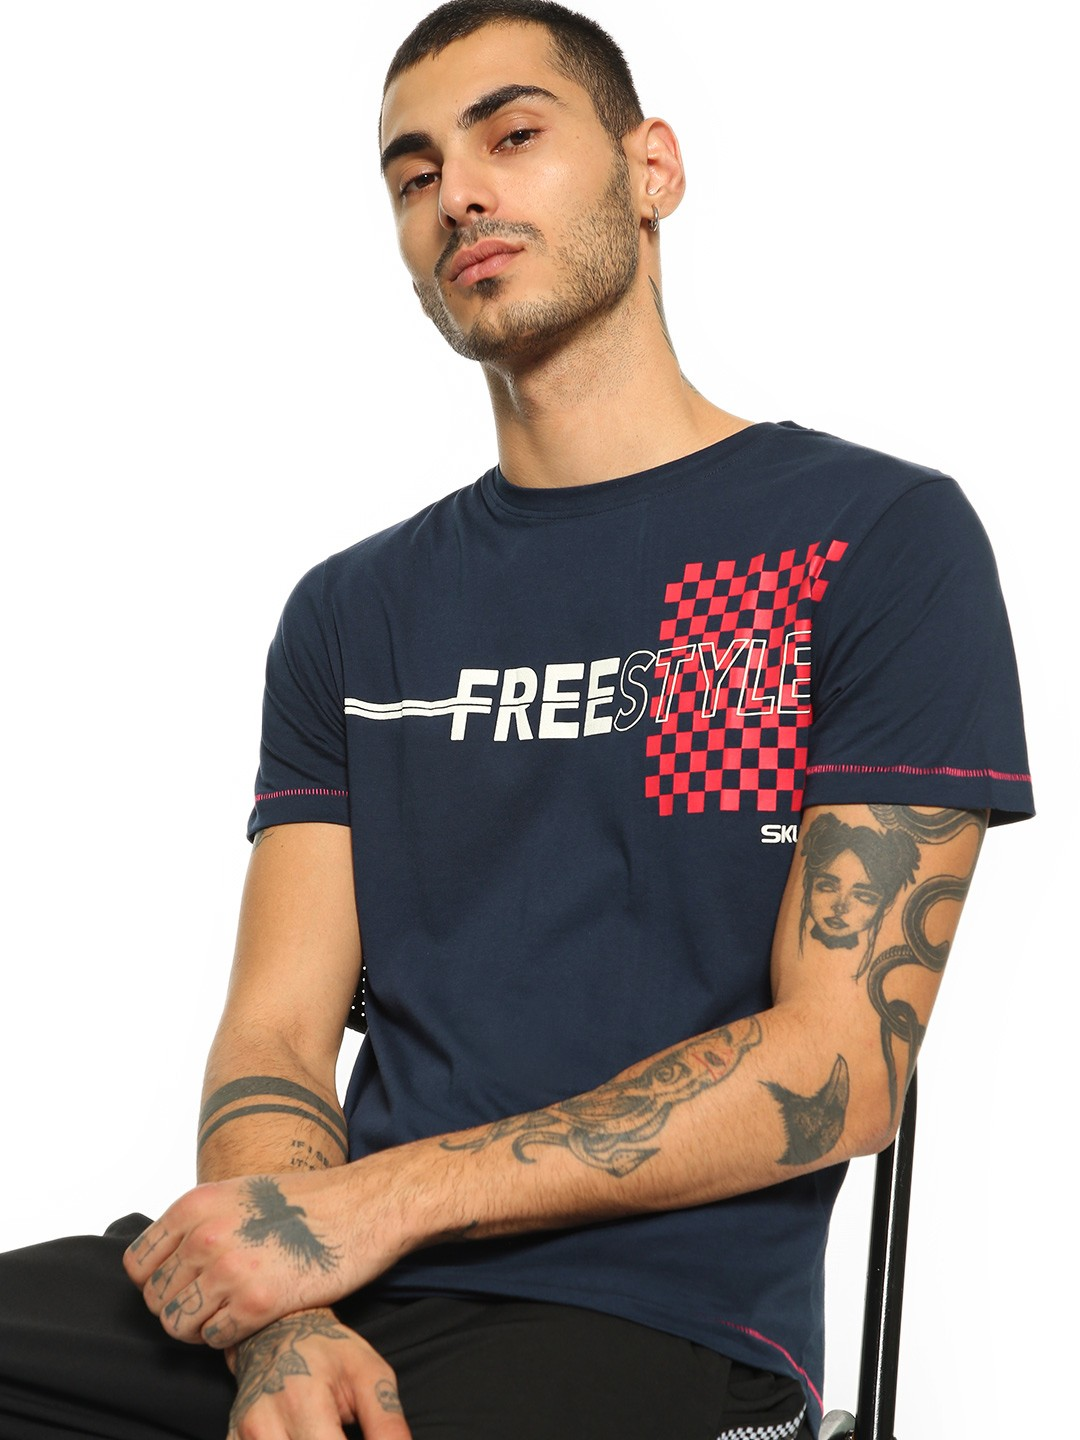 SKULT By Shahid Kapoor Navy Checkerboard Freestyle Print T-Shirt 1